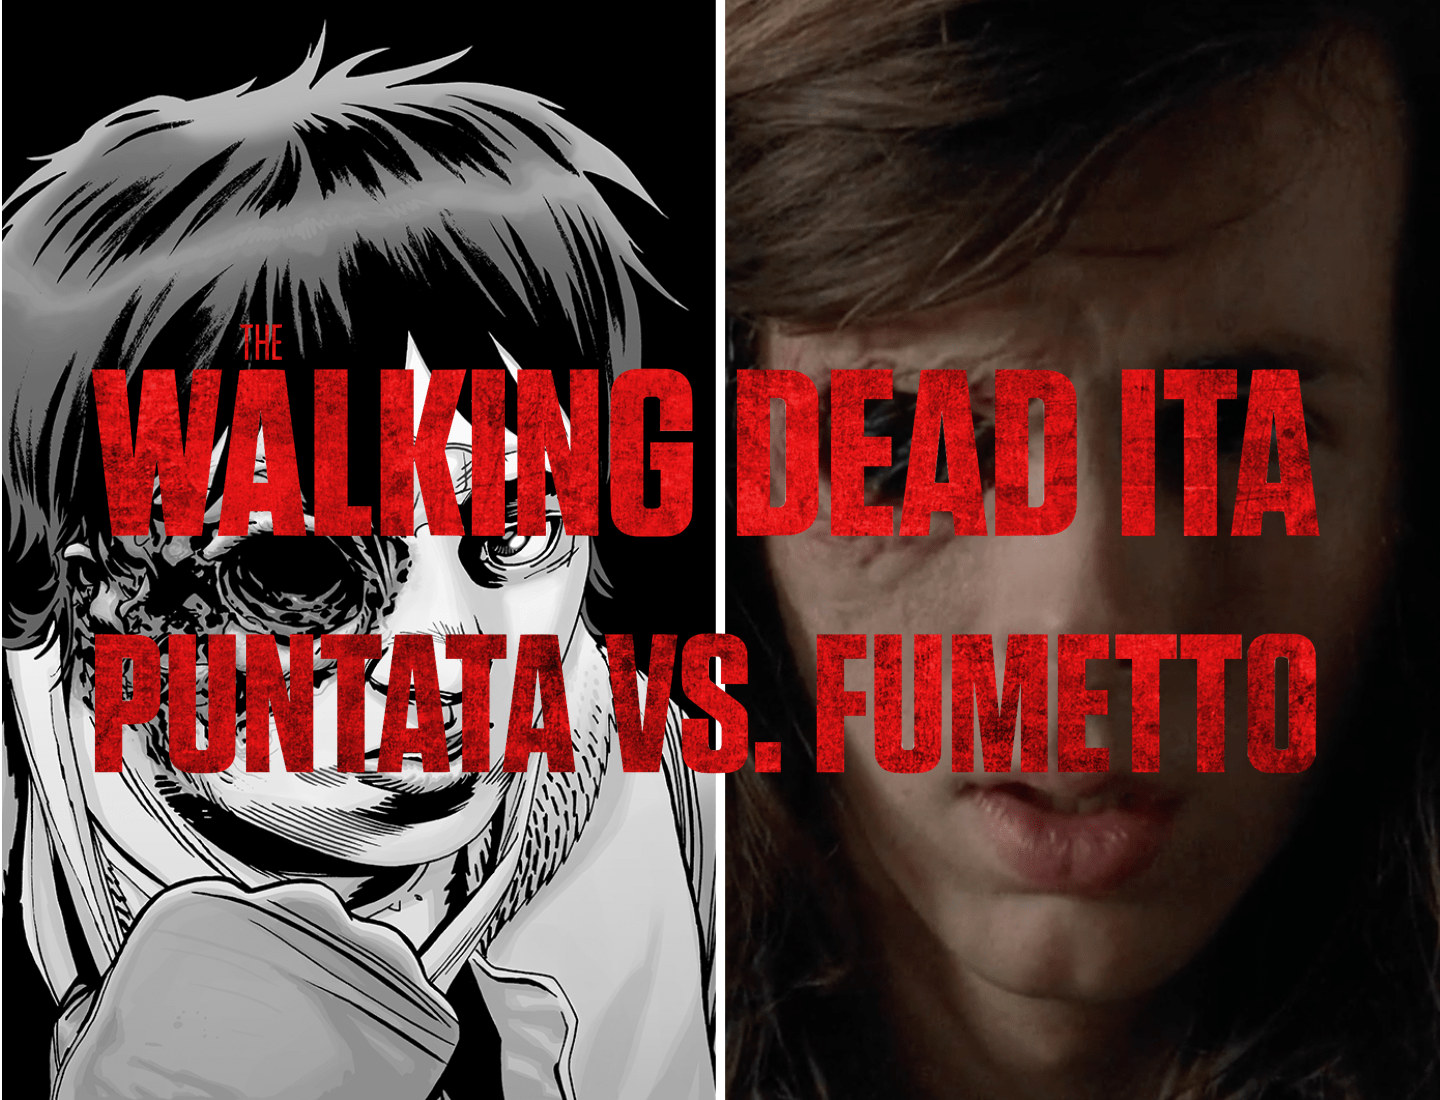 L'Episodio 7×07 di The Walking Dead vs. il fumetto